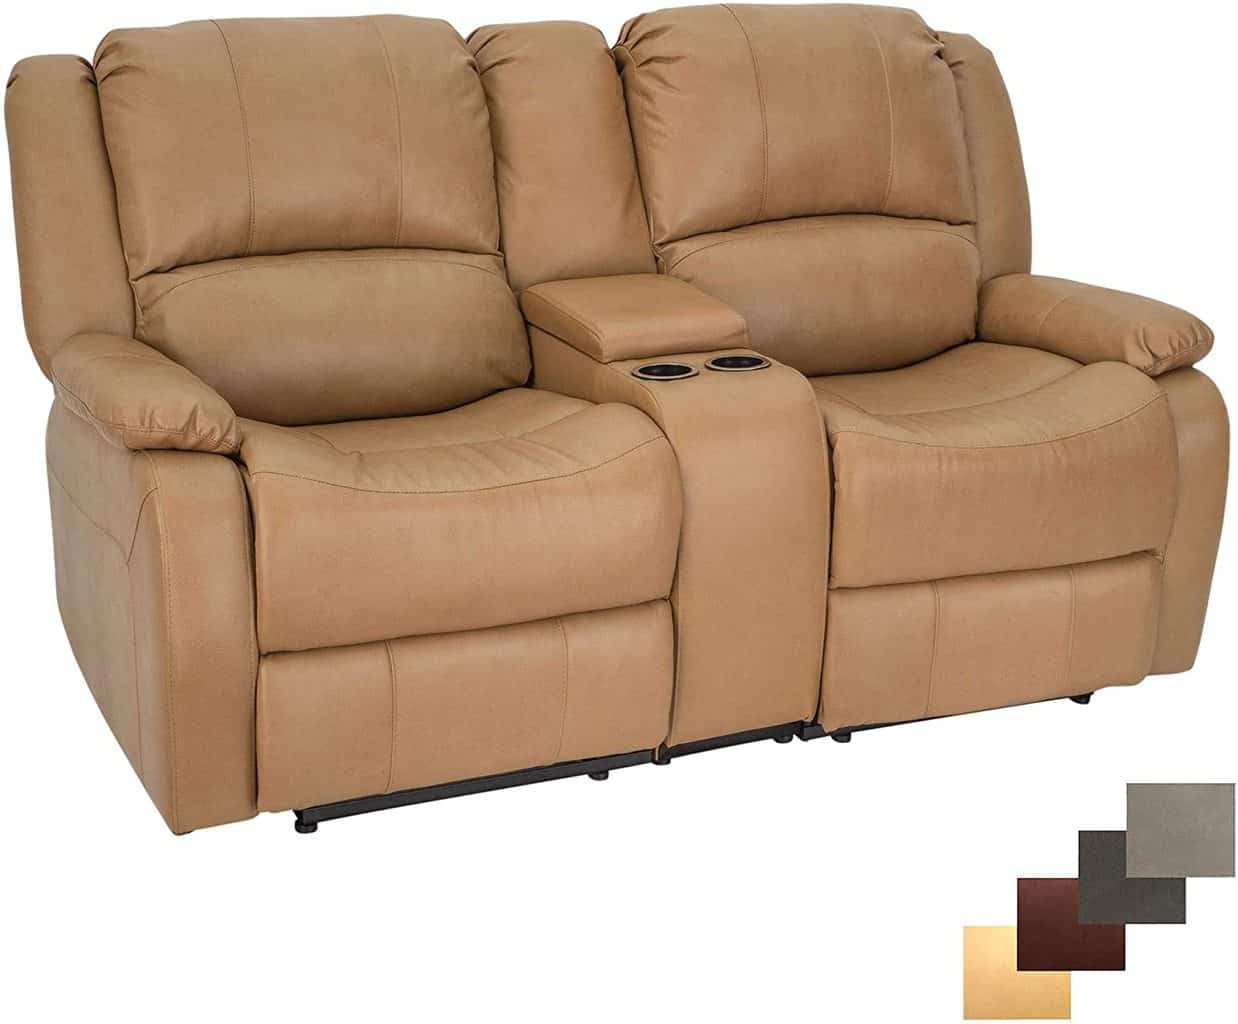 9. Charles Double Wall Hugger Couch 67""